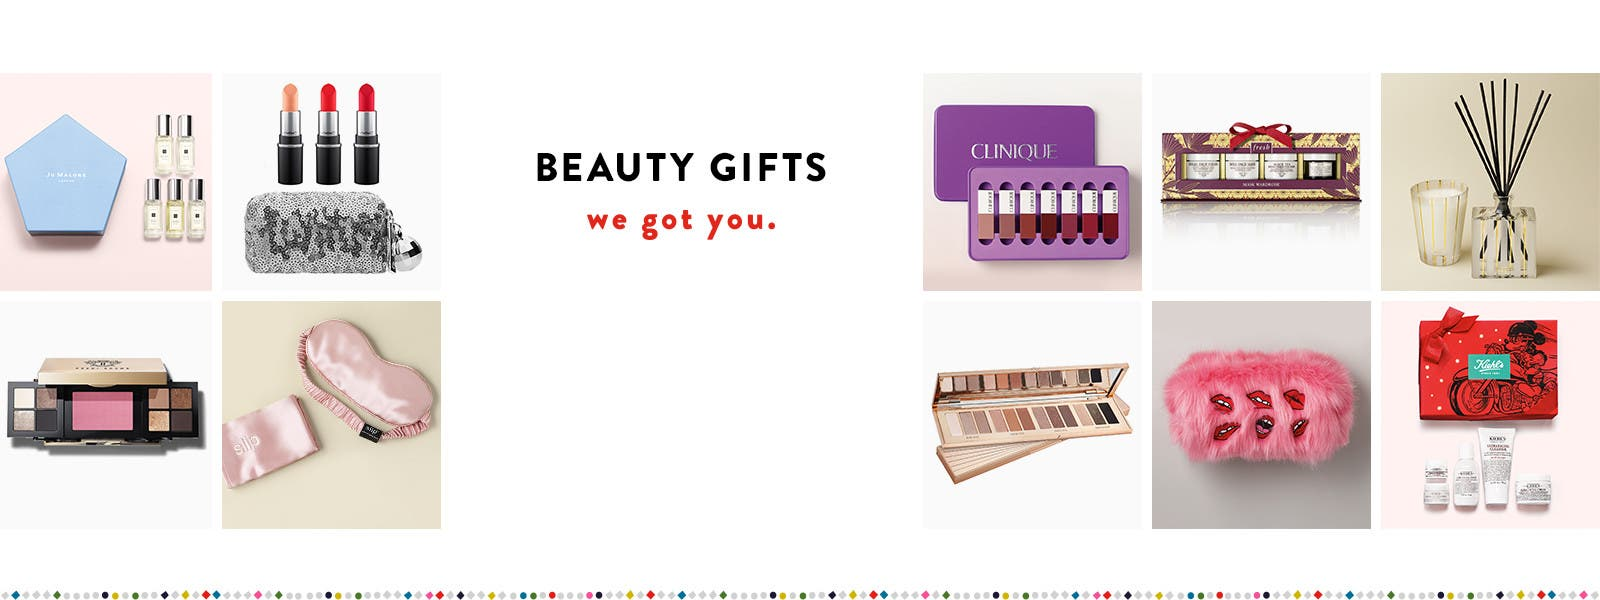 Beauty gifts, we got you.